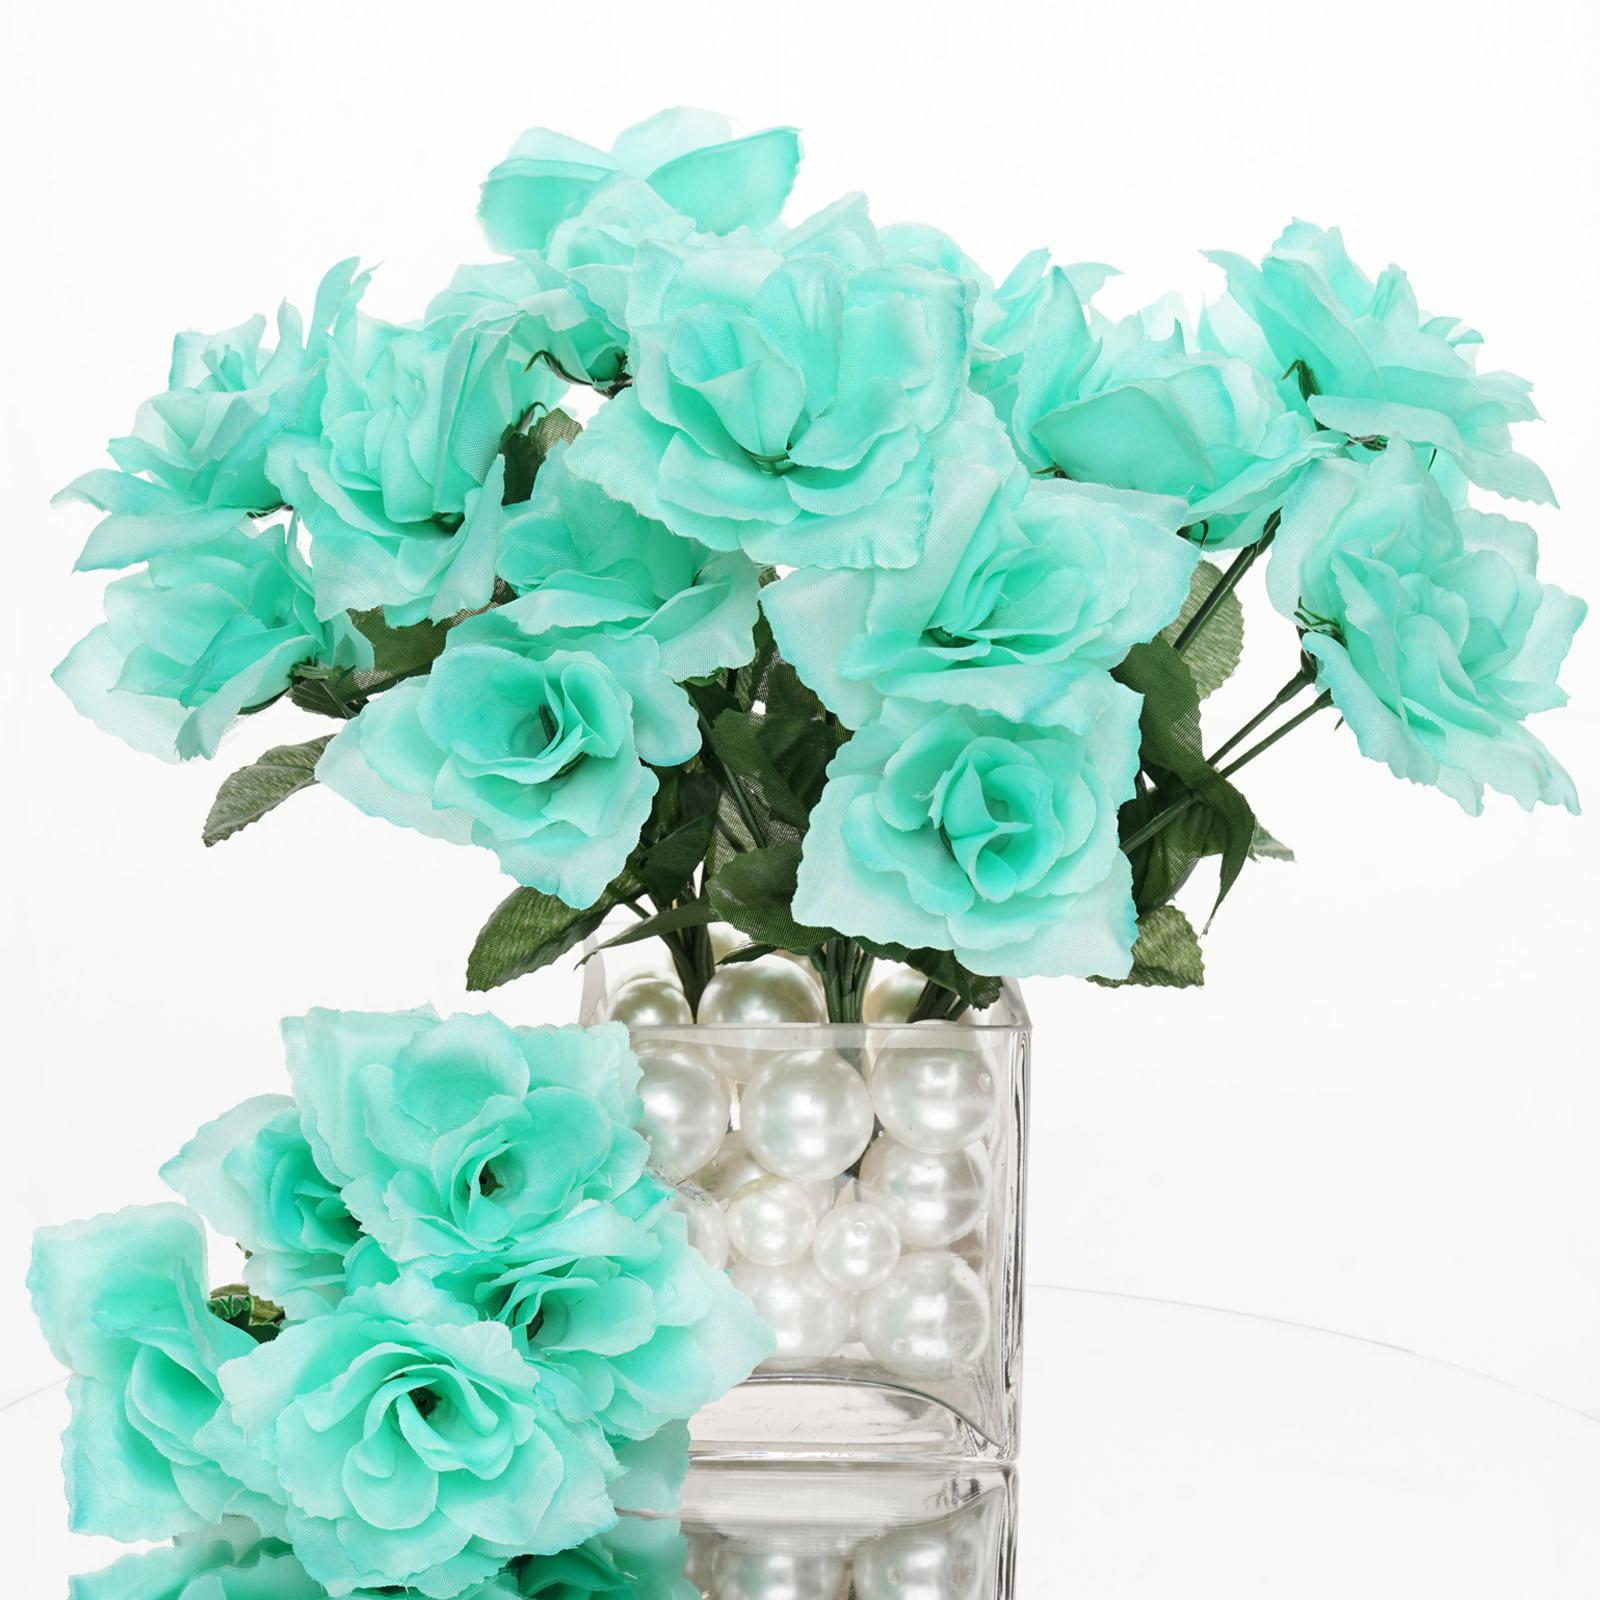 84 Silk Open Roses Wedding Flowers Bouquets Wholesale Supply